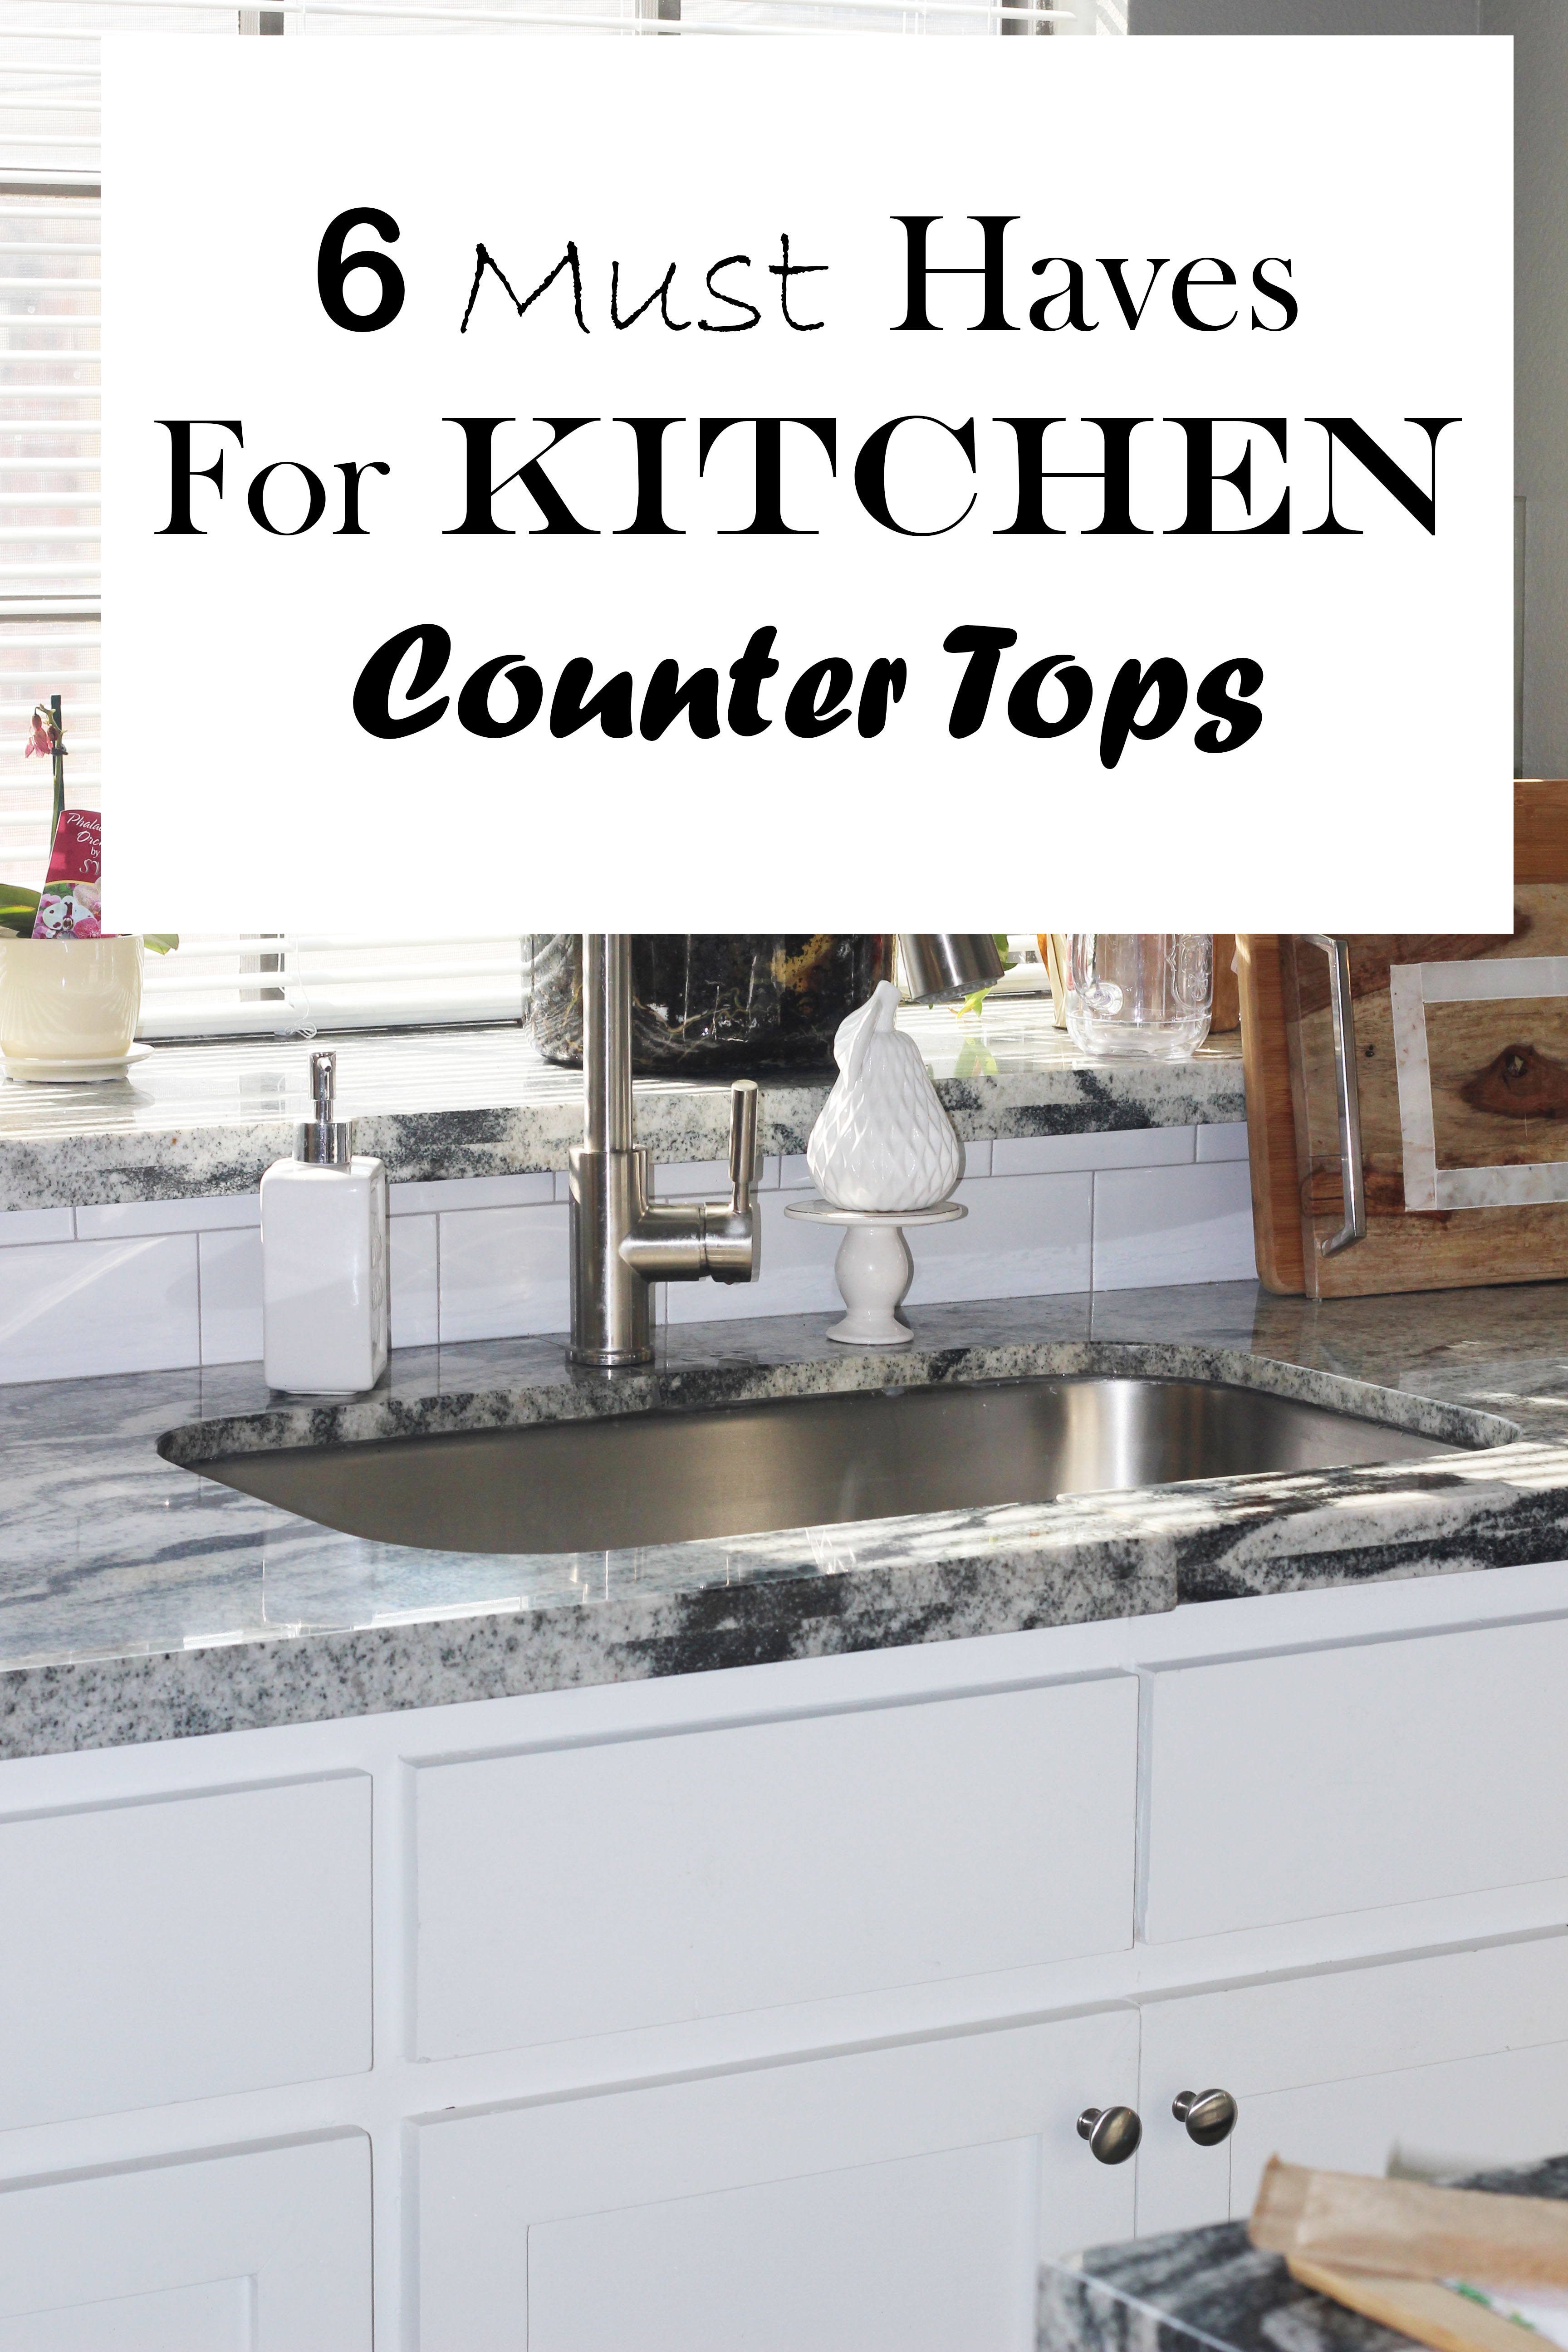 6-must-haves-for-kitchen-counter-top